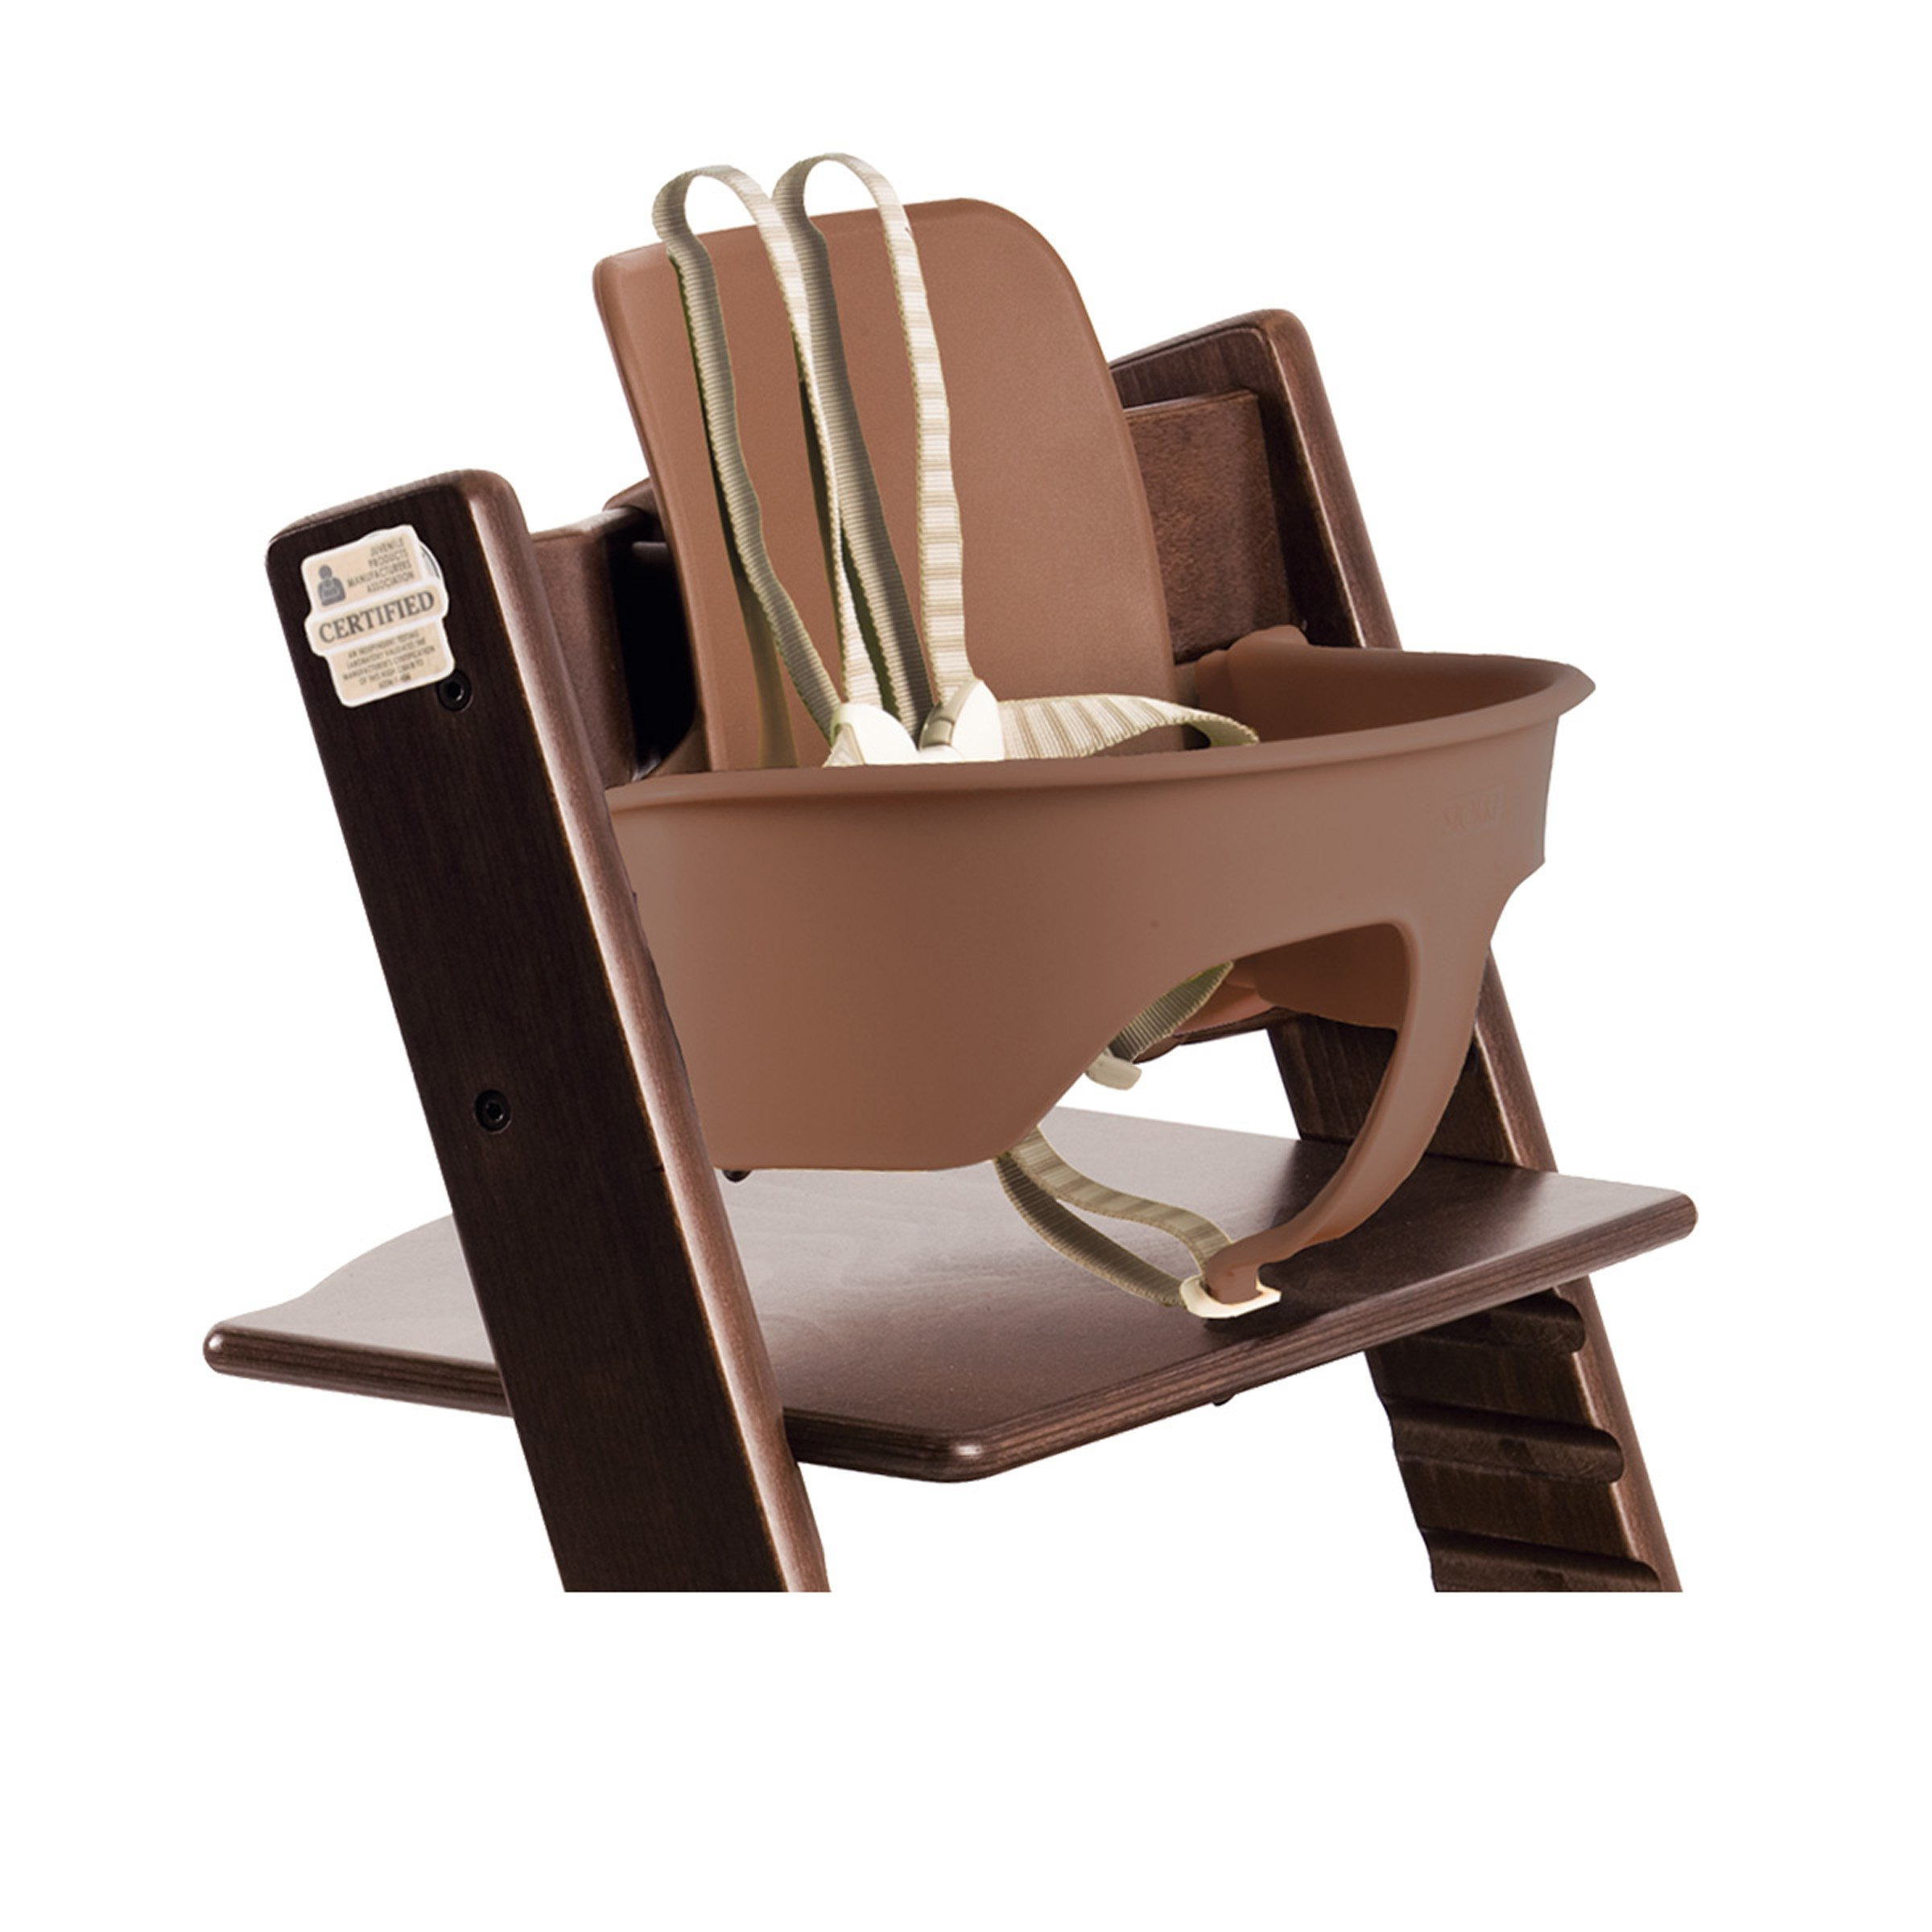 Populære Amazon.com: Stokke - Tripp Trapp High Chair - Walnut Brown: Baby @UL-12